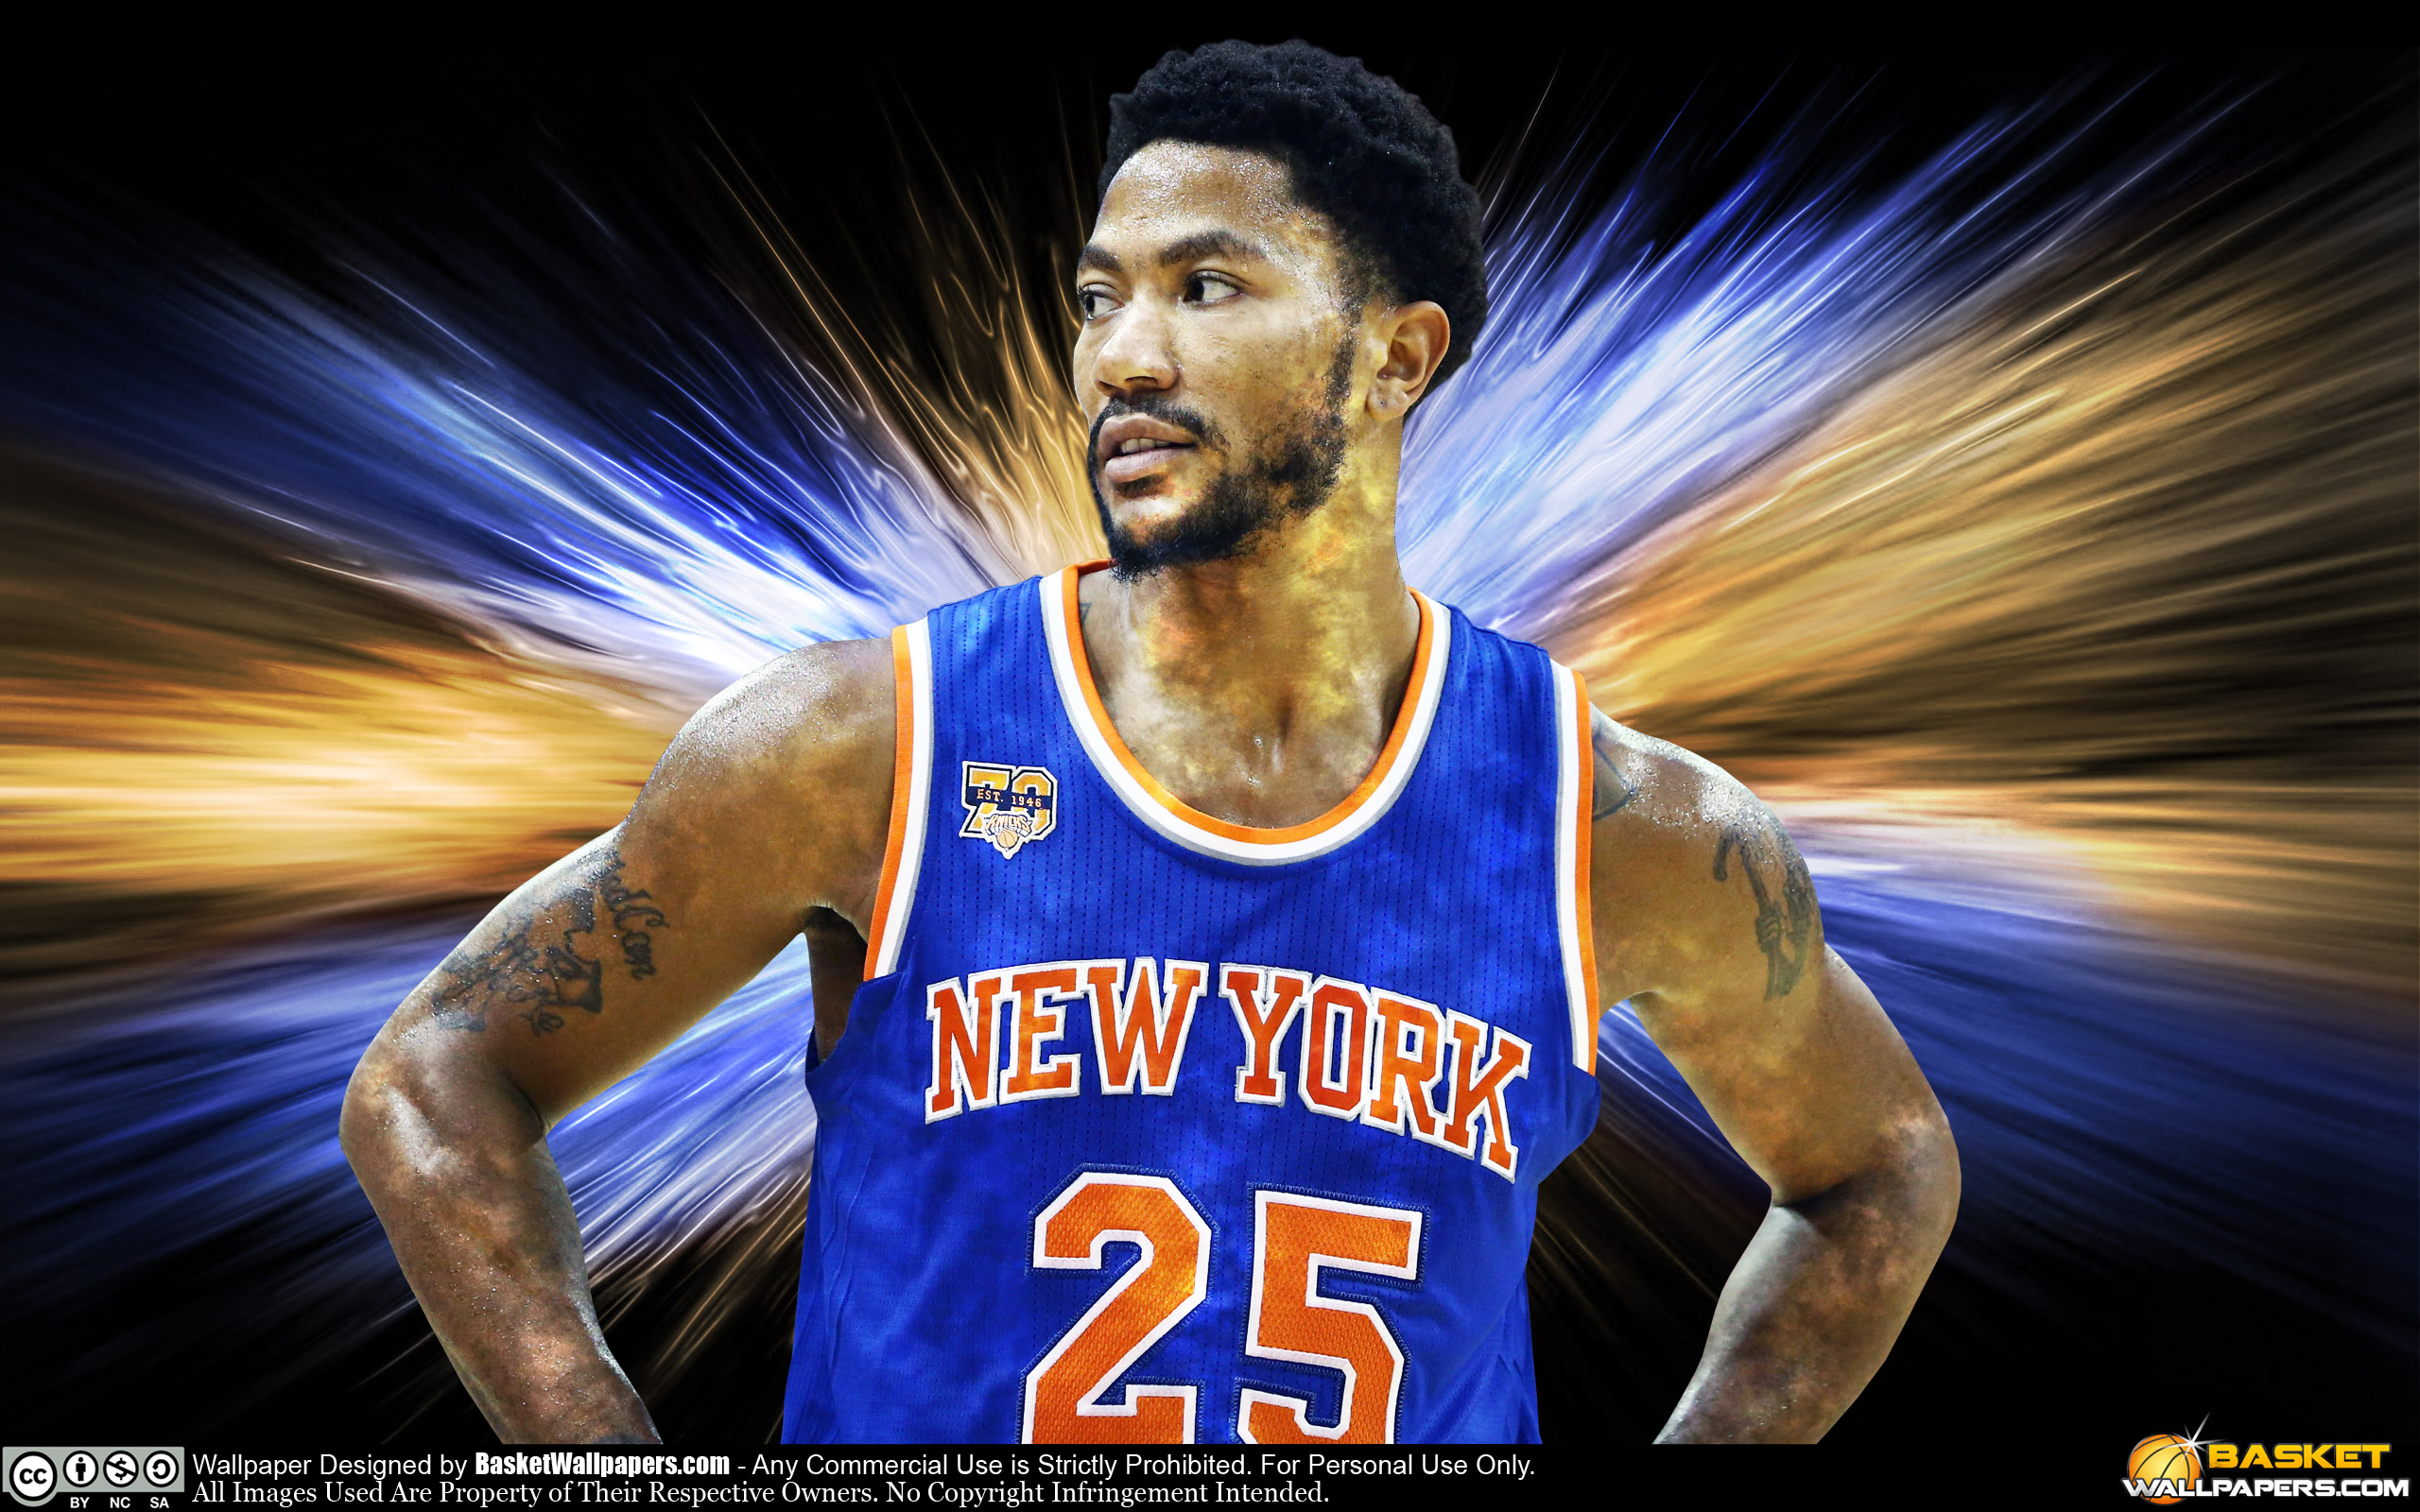 Derrick Rose New York Knicks 2016 Wallpaper